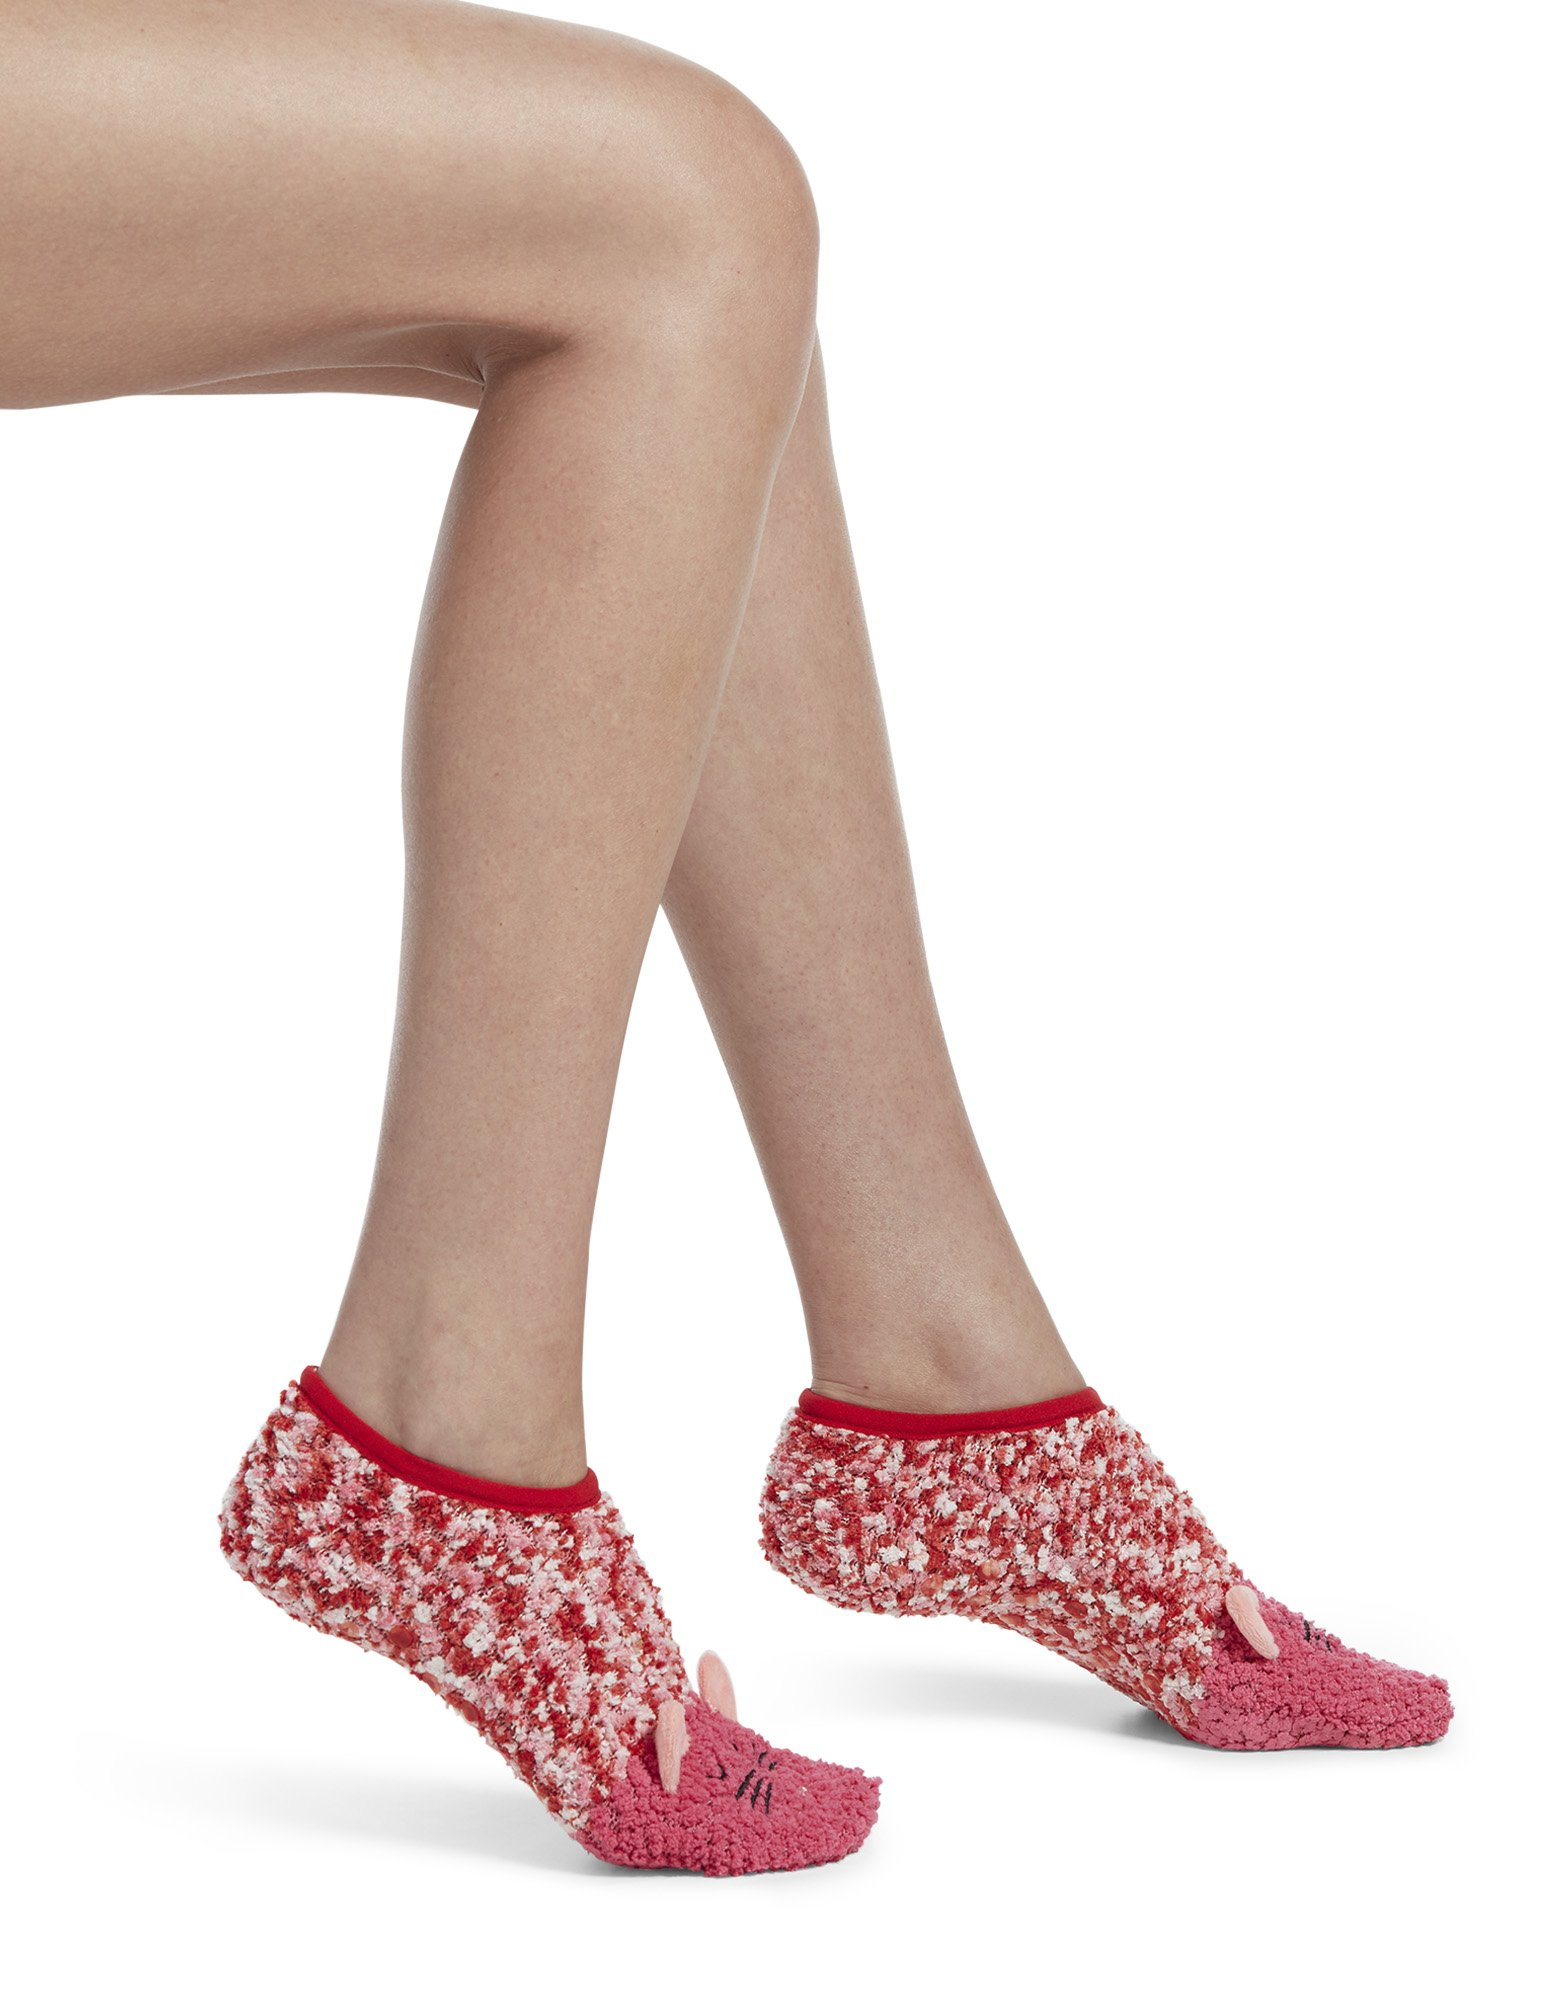 HUE Women's Critter Ultra-Soft No-Show Slipper Socks with Grippers, red hot, One Size